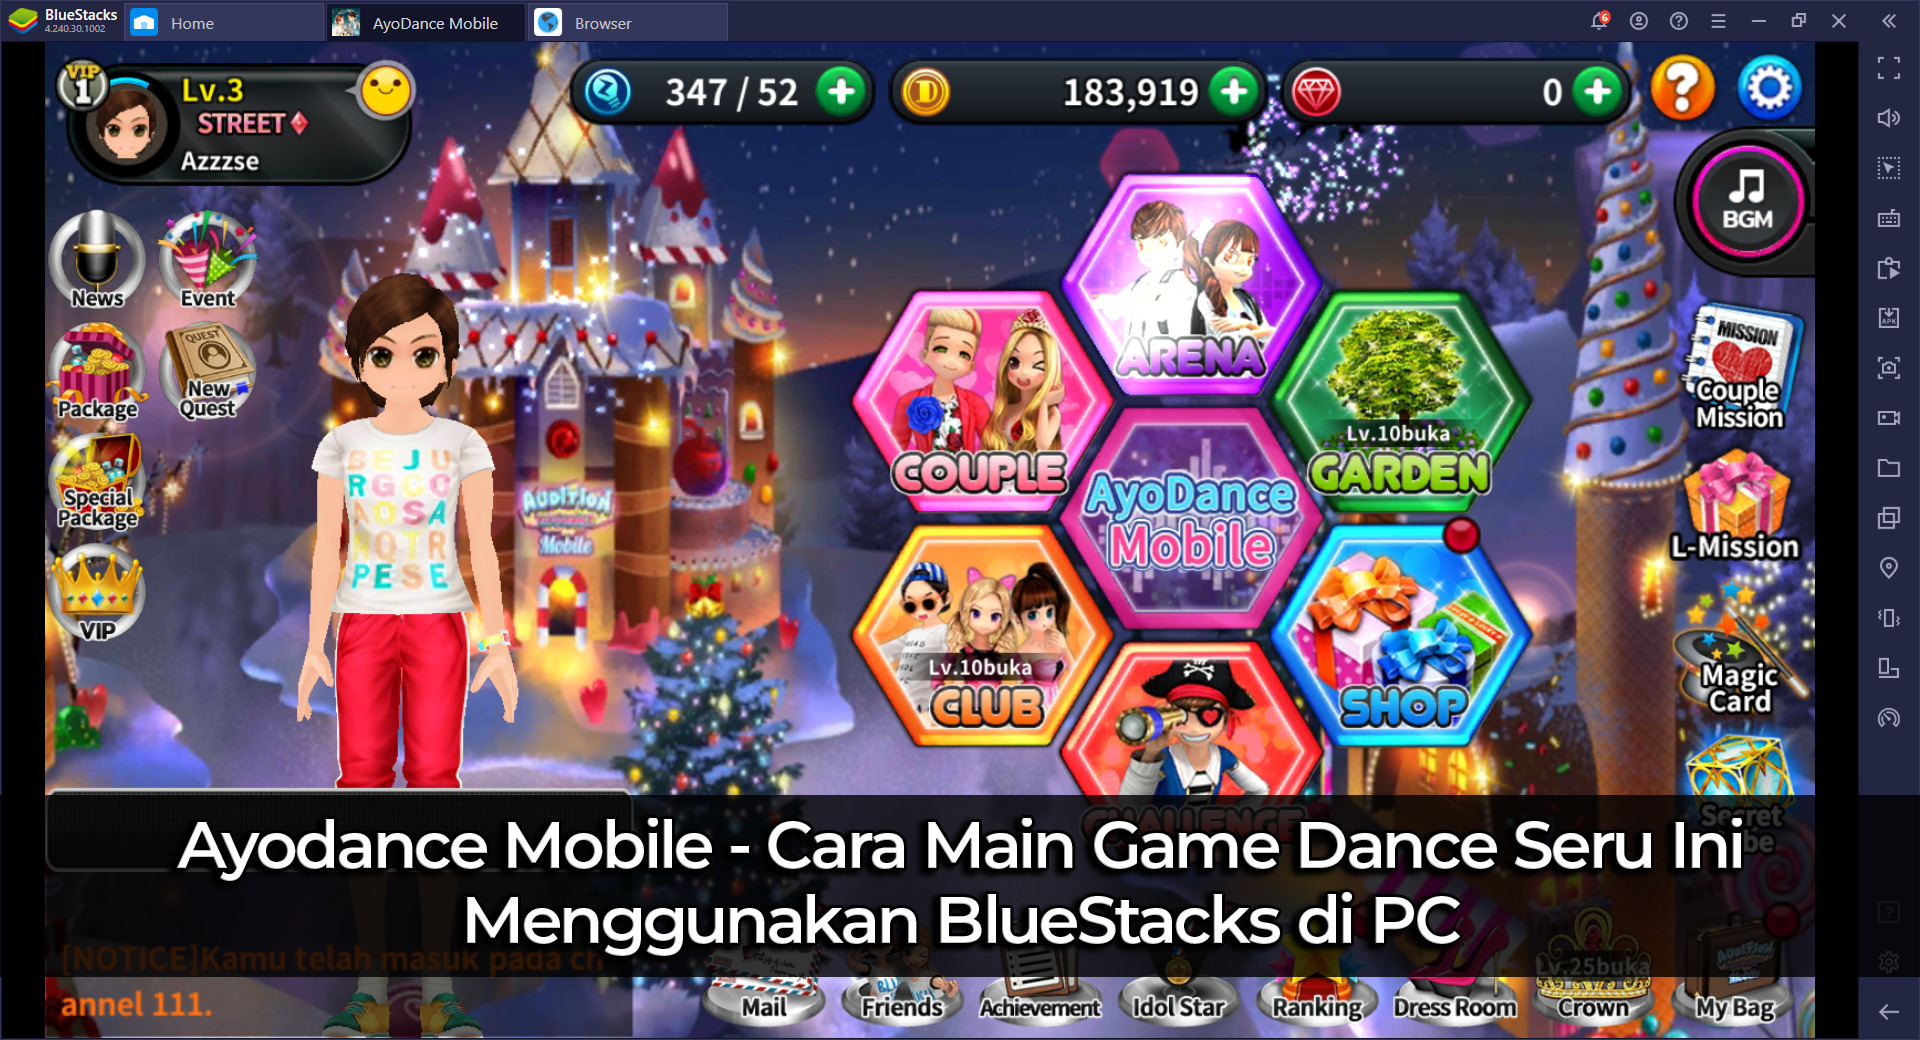 AyoDance Mobile – Cara Main Game Dance Seru Ini Menggunakan BlueStacks di PC